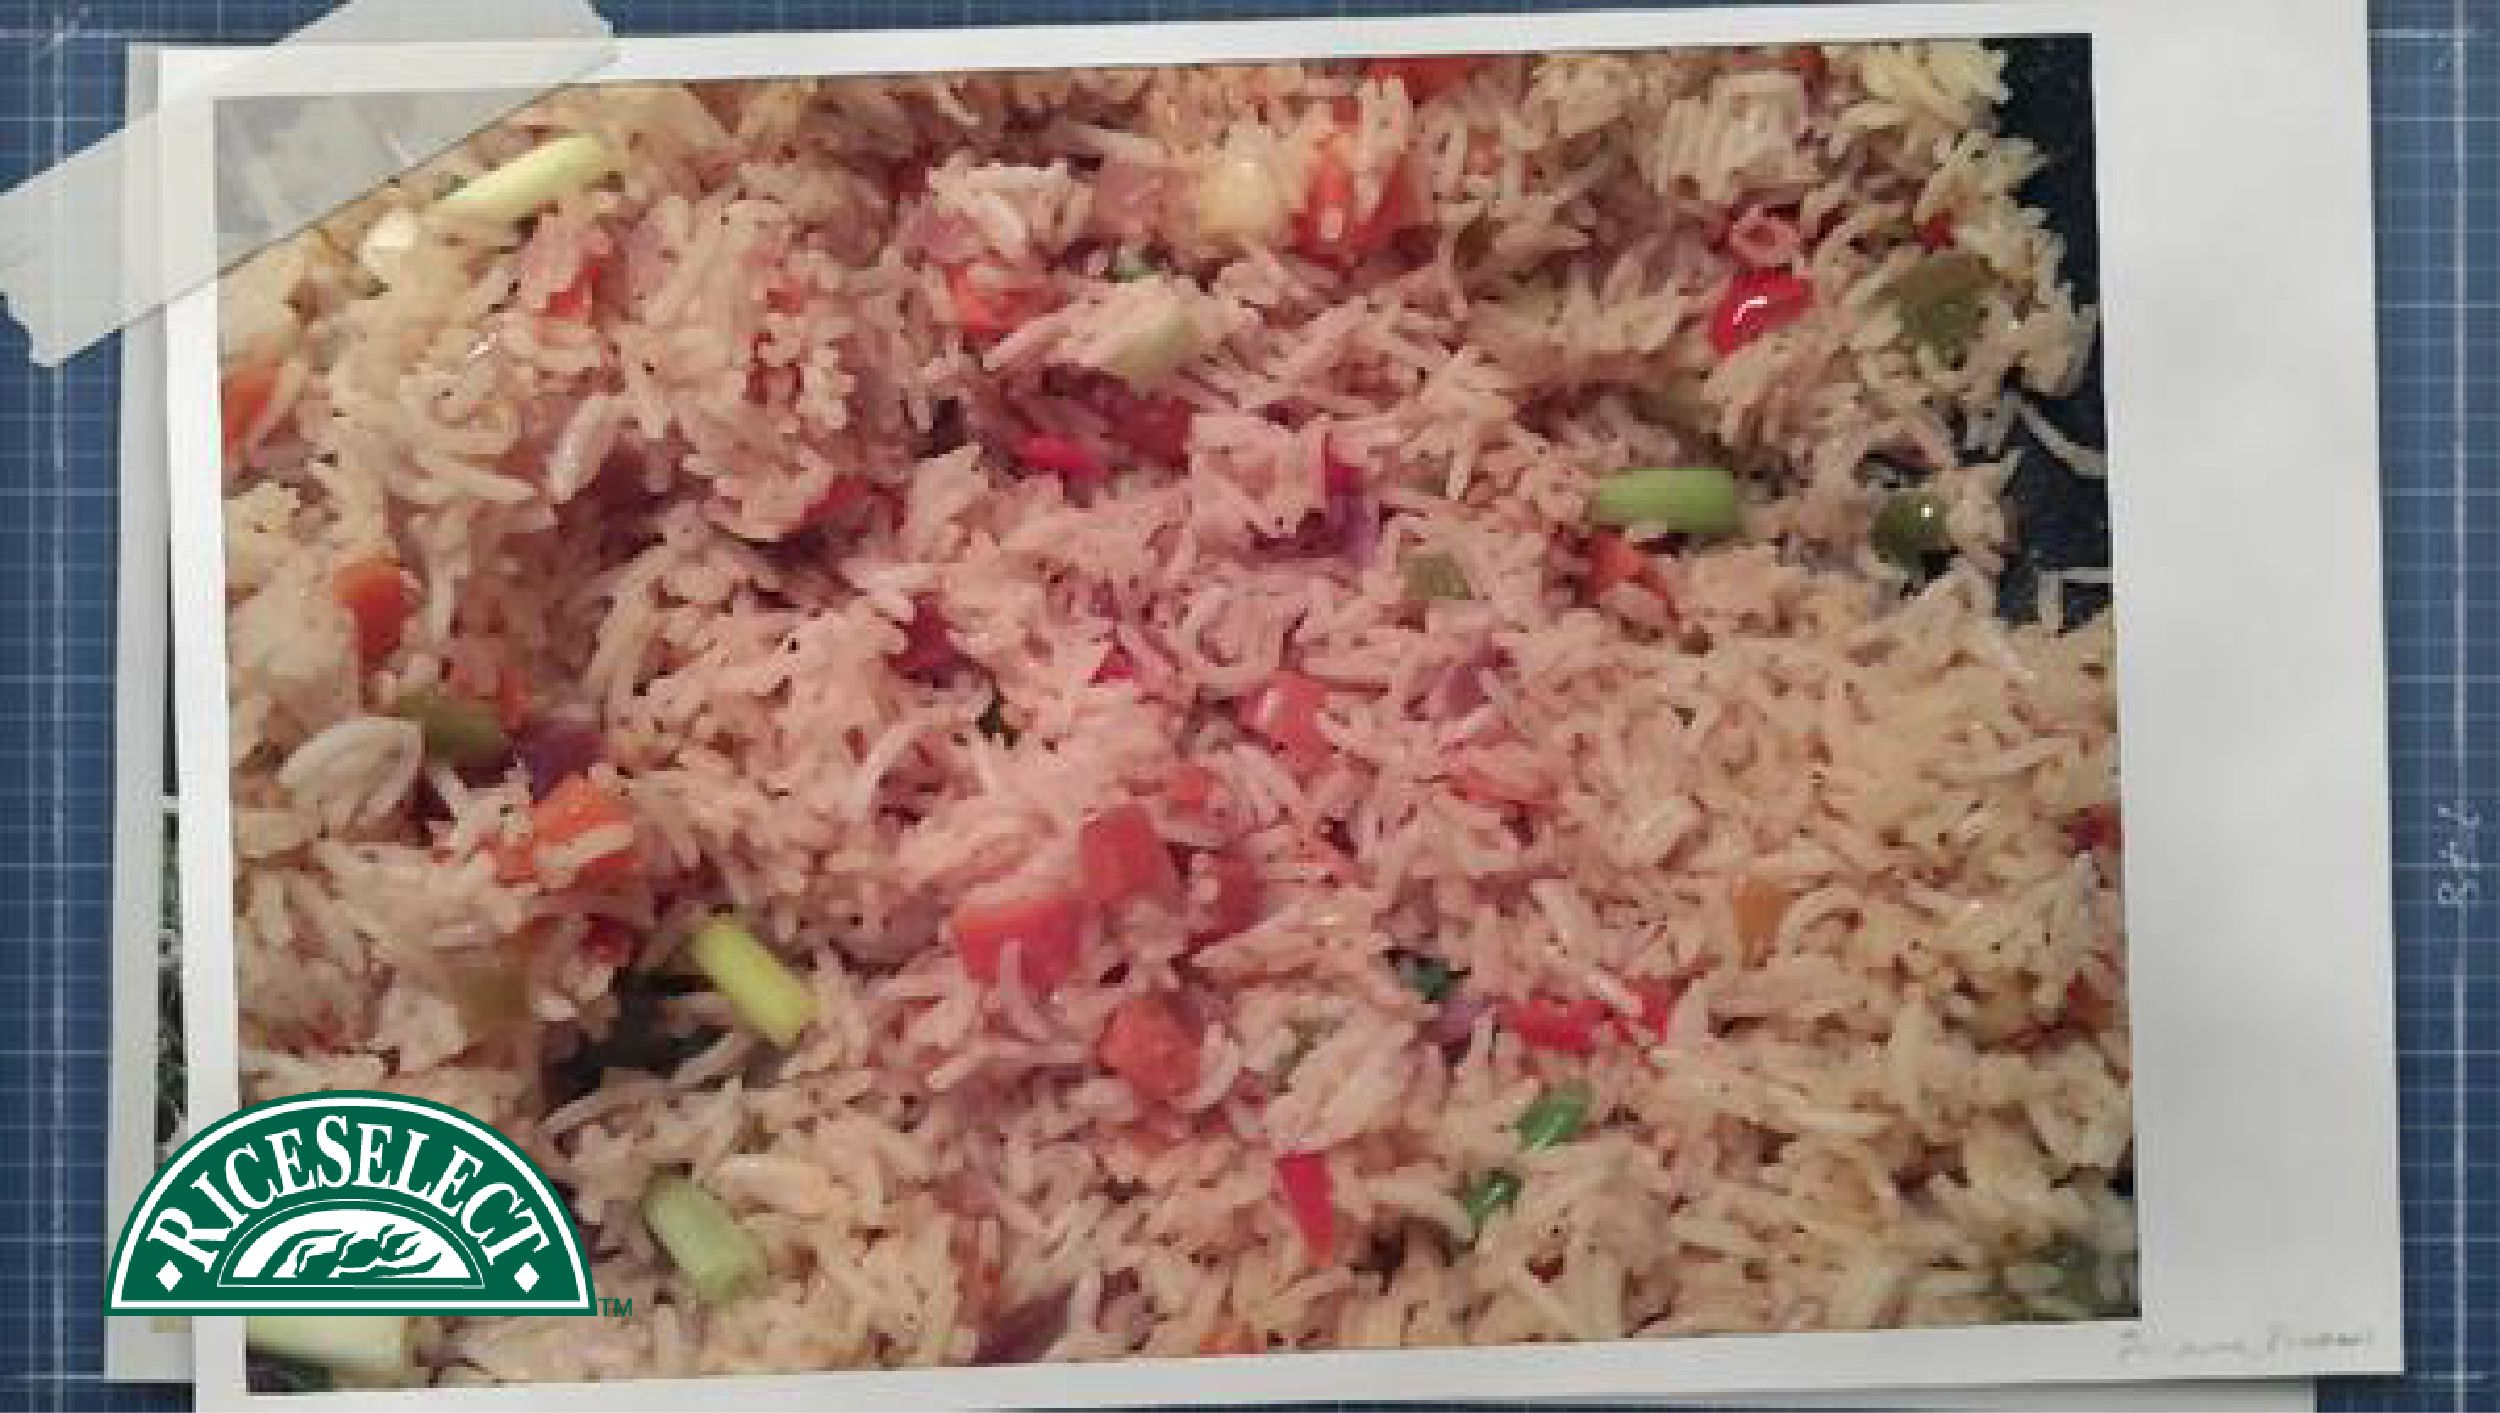 How @nupur_ghosh on Twitter rethinks rice: Vegetable Rice using Texmati® #RethinkRice #Sweeps #RiceSelect #Rice